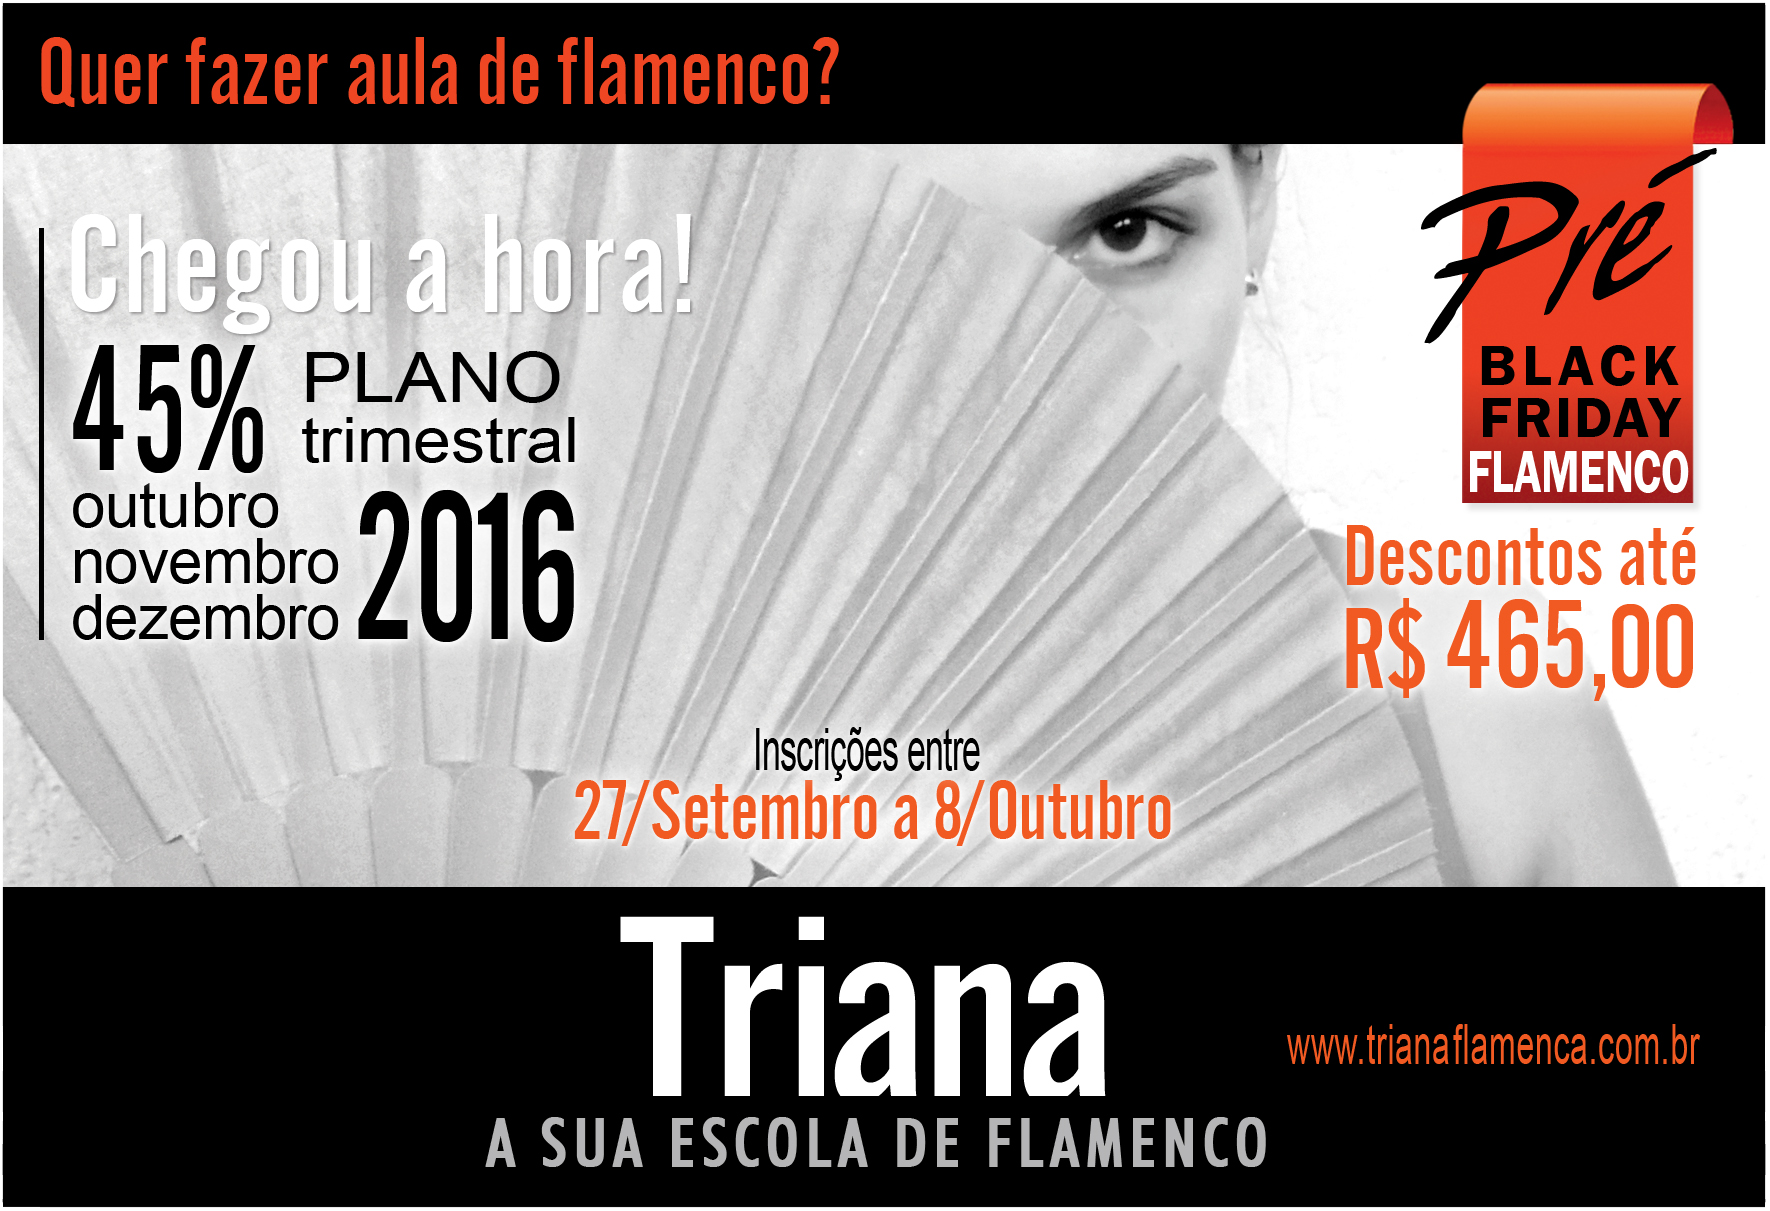 Triana aulas de flamenco no Pre Black Friday com Andrea Guelpa